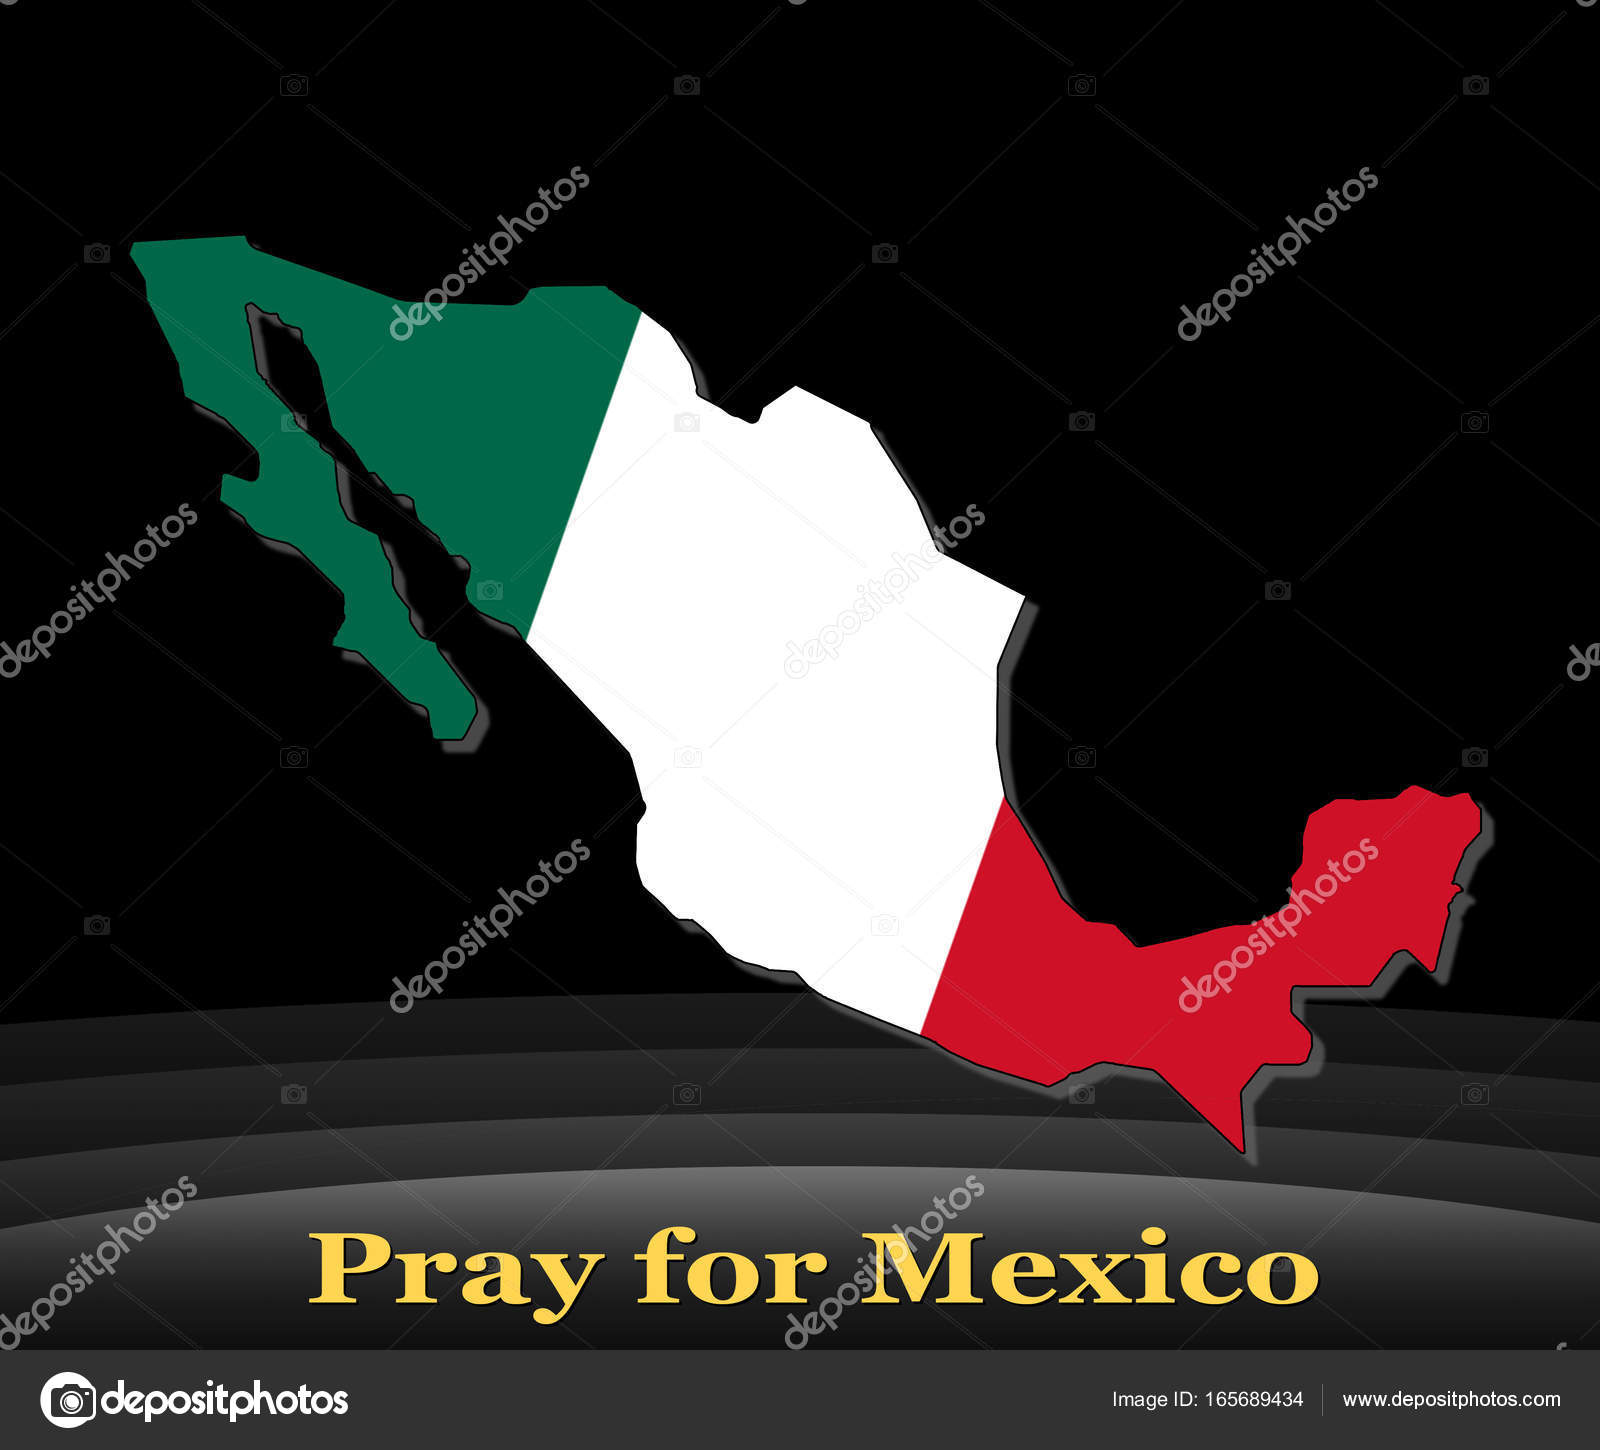 mexico flag color on abstract shape of country pray for mexico